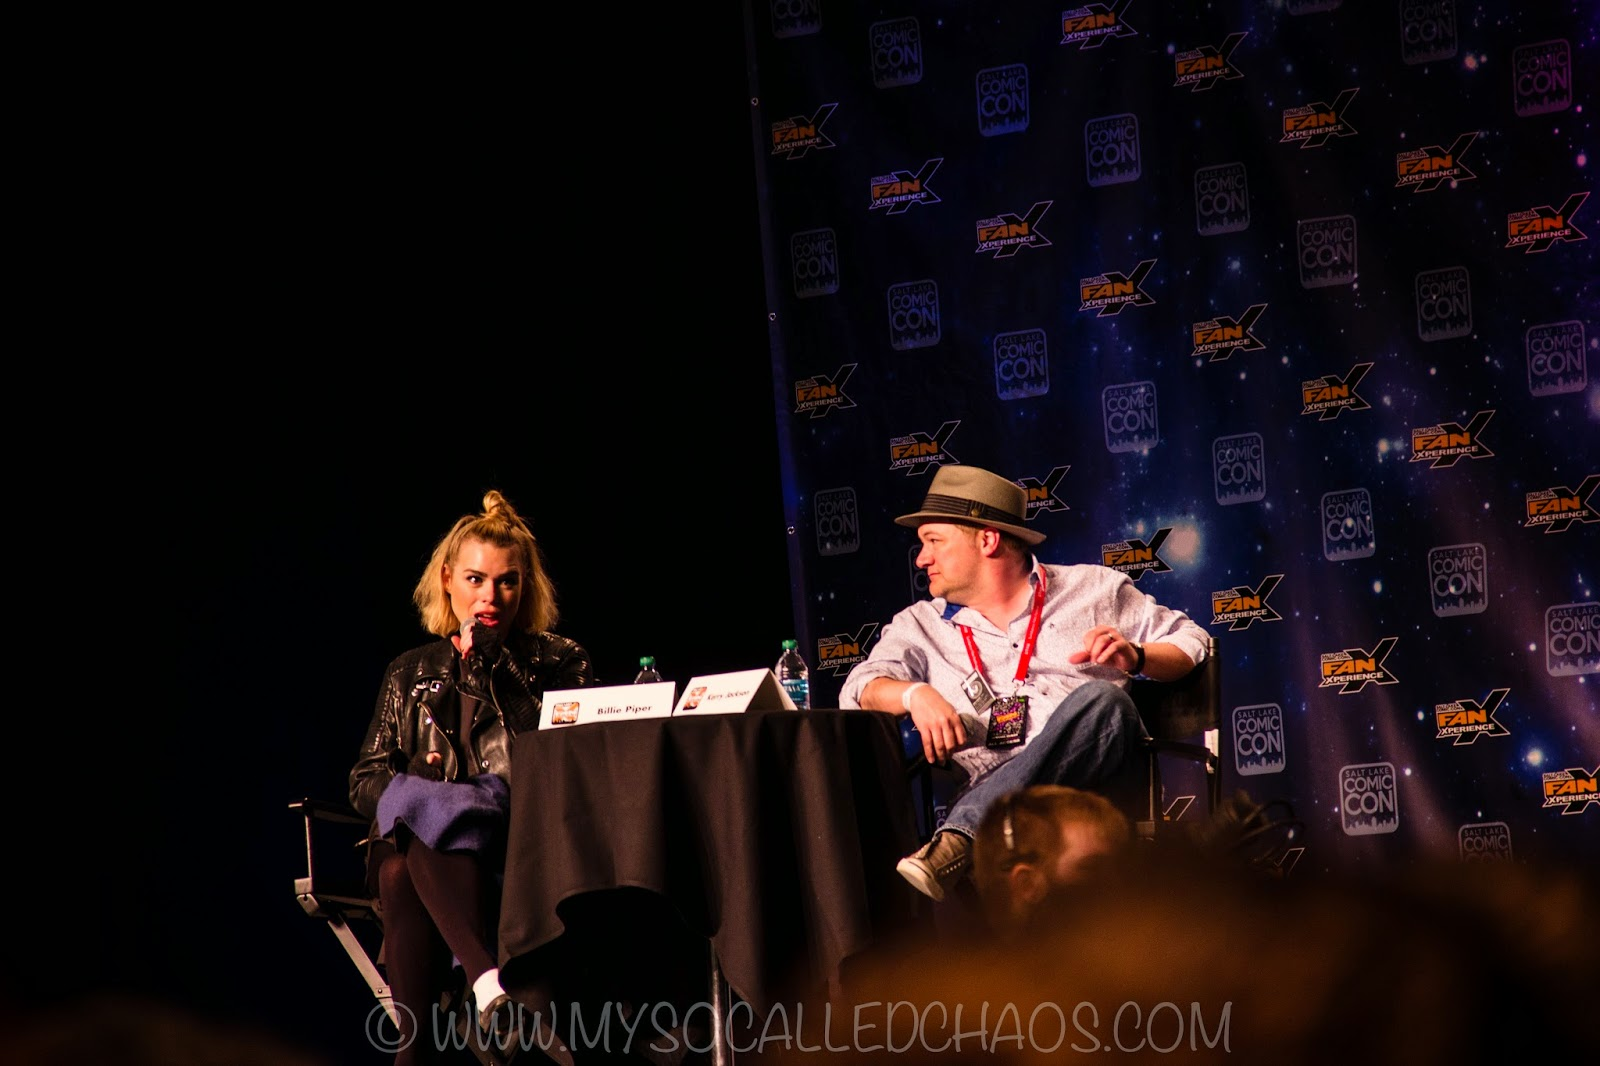 Billie Piper at Salt Lake Comic Con FanX 2015